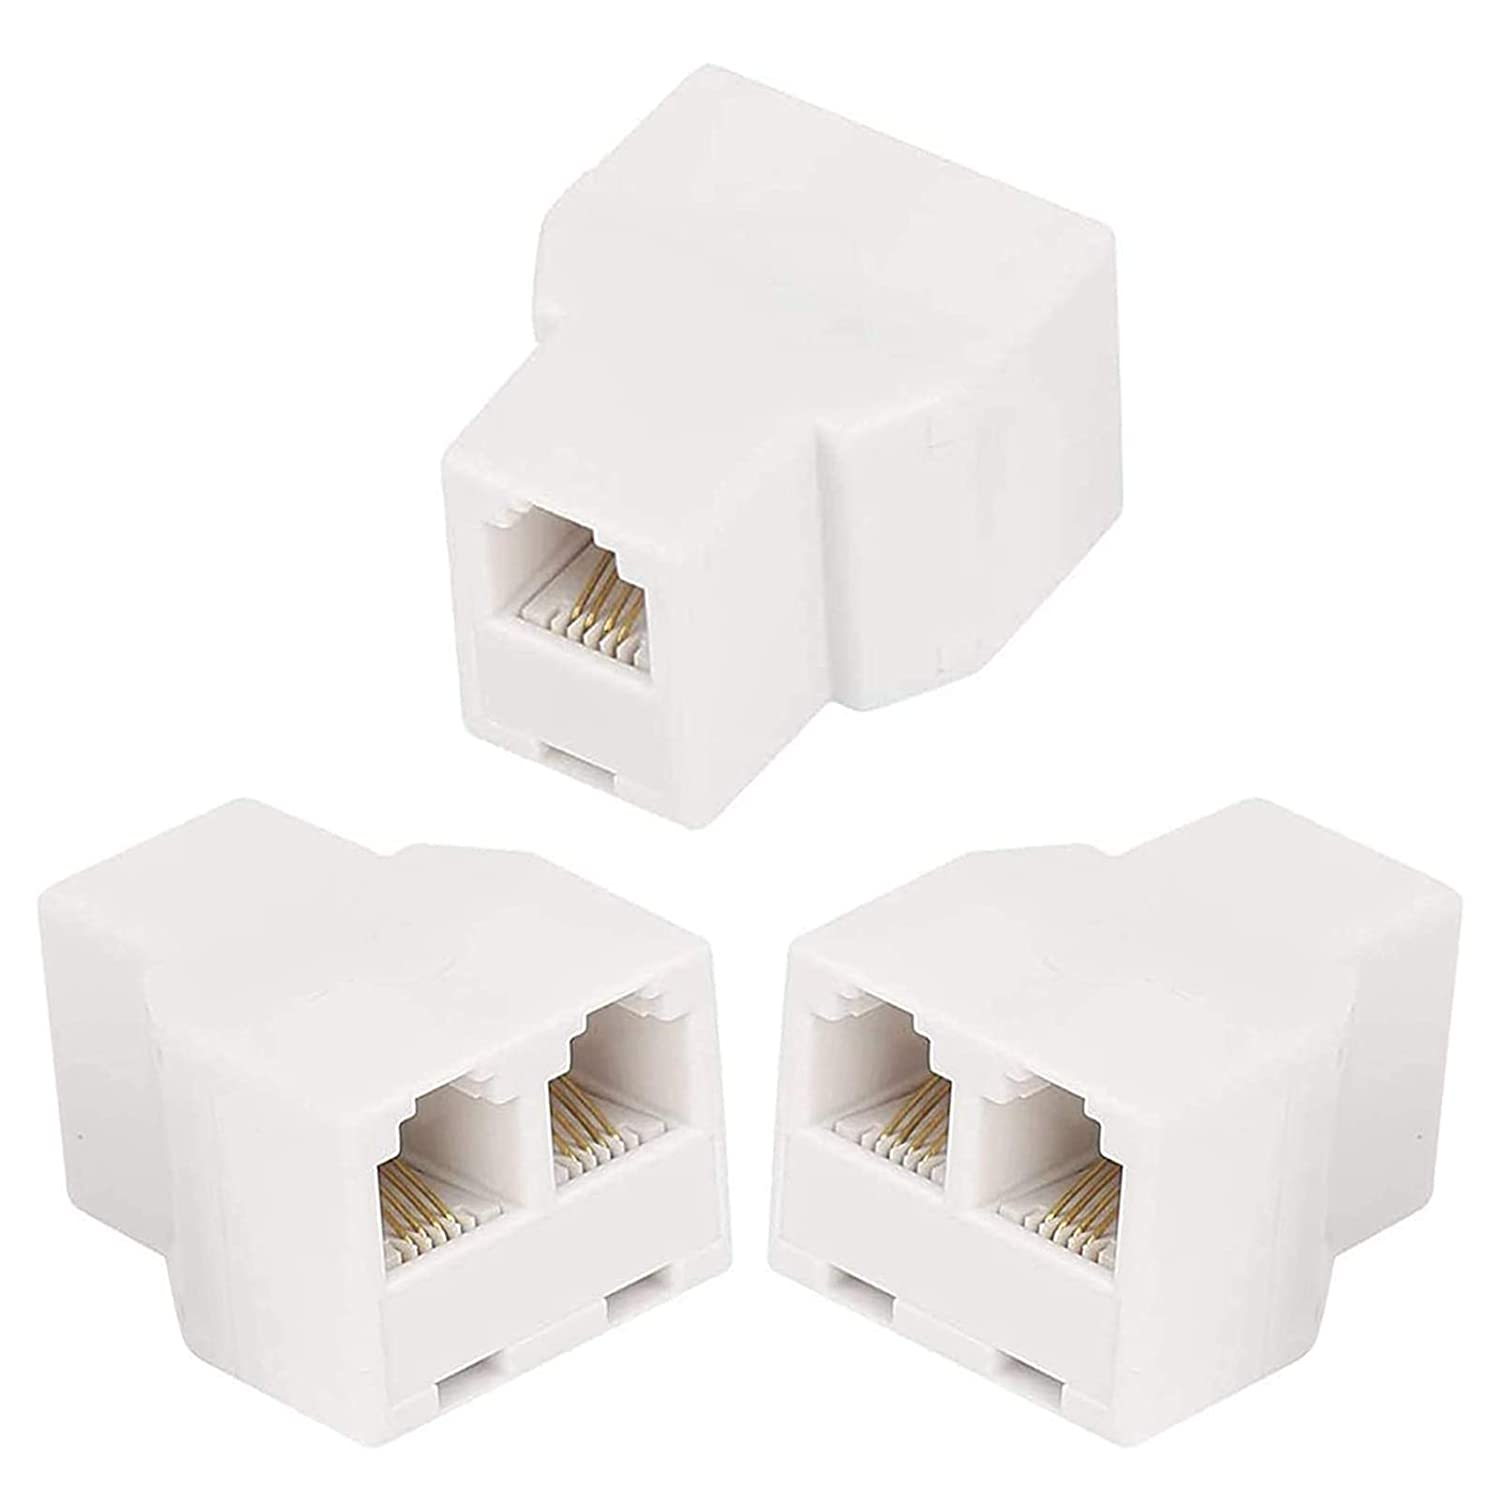 RJ11 6P4C 3Female Telephone Splitter Adapter Cable,Telephone Landline Cable Connector and Separator(3Pack,White)